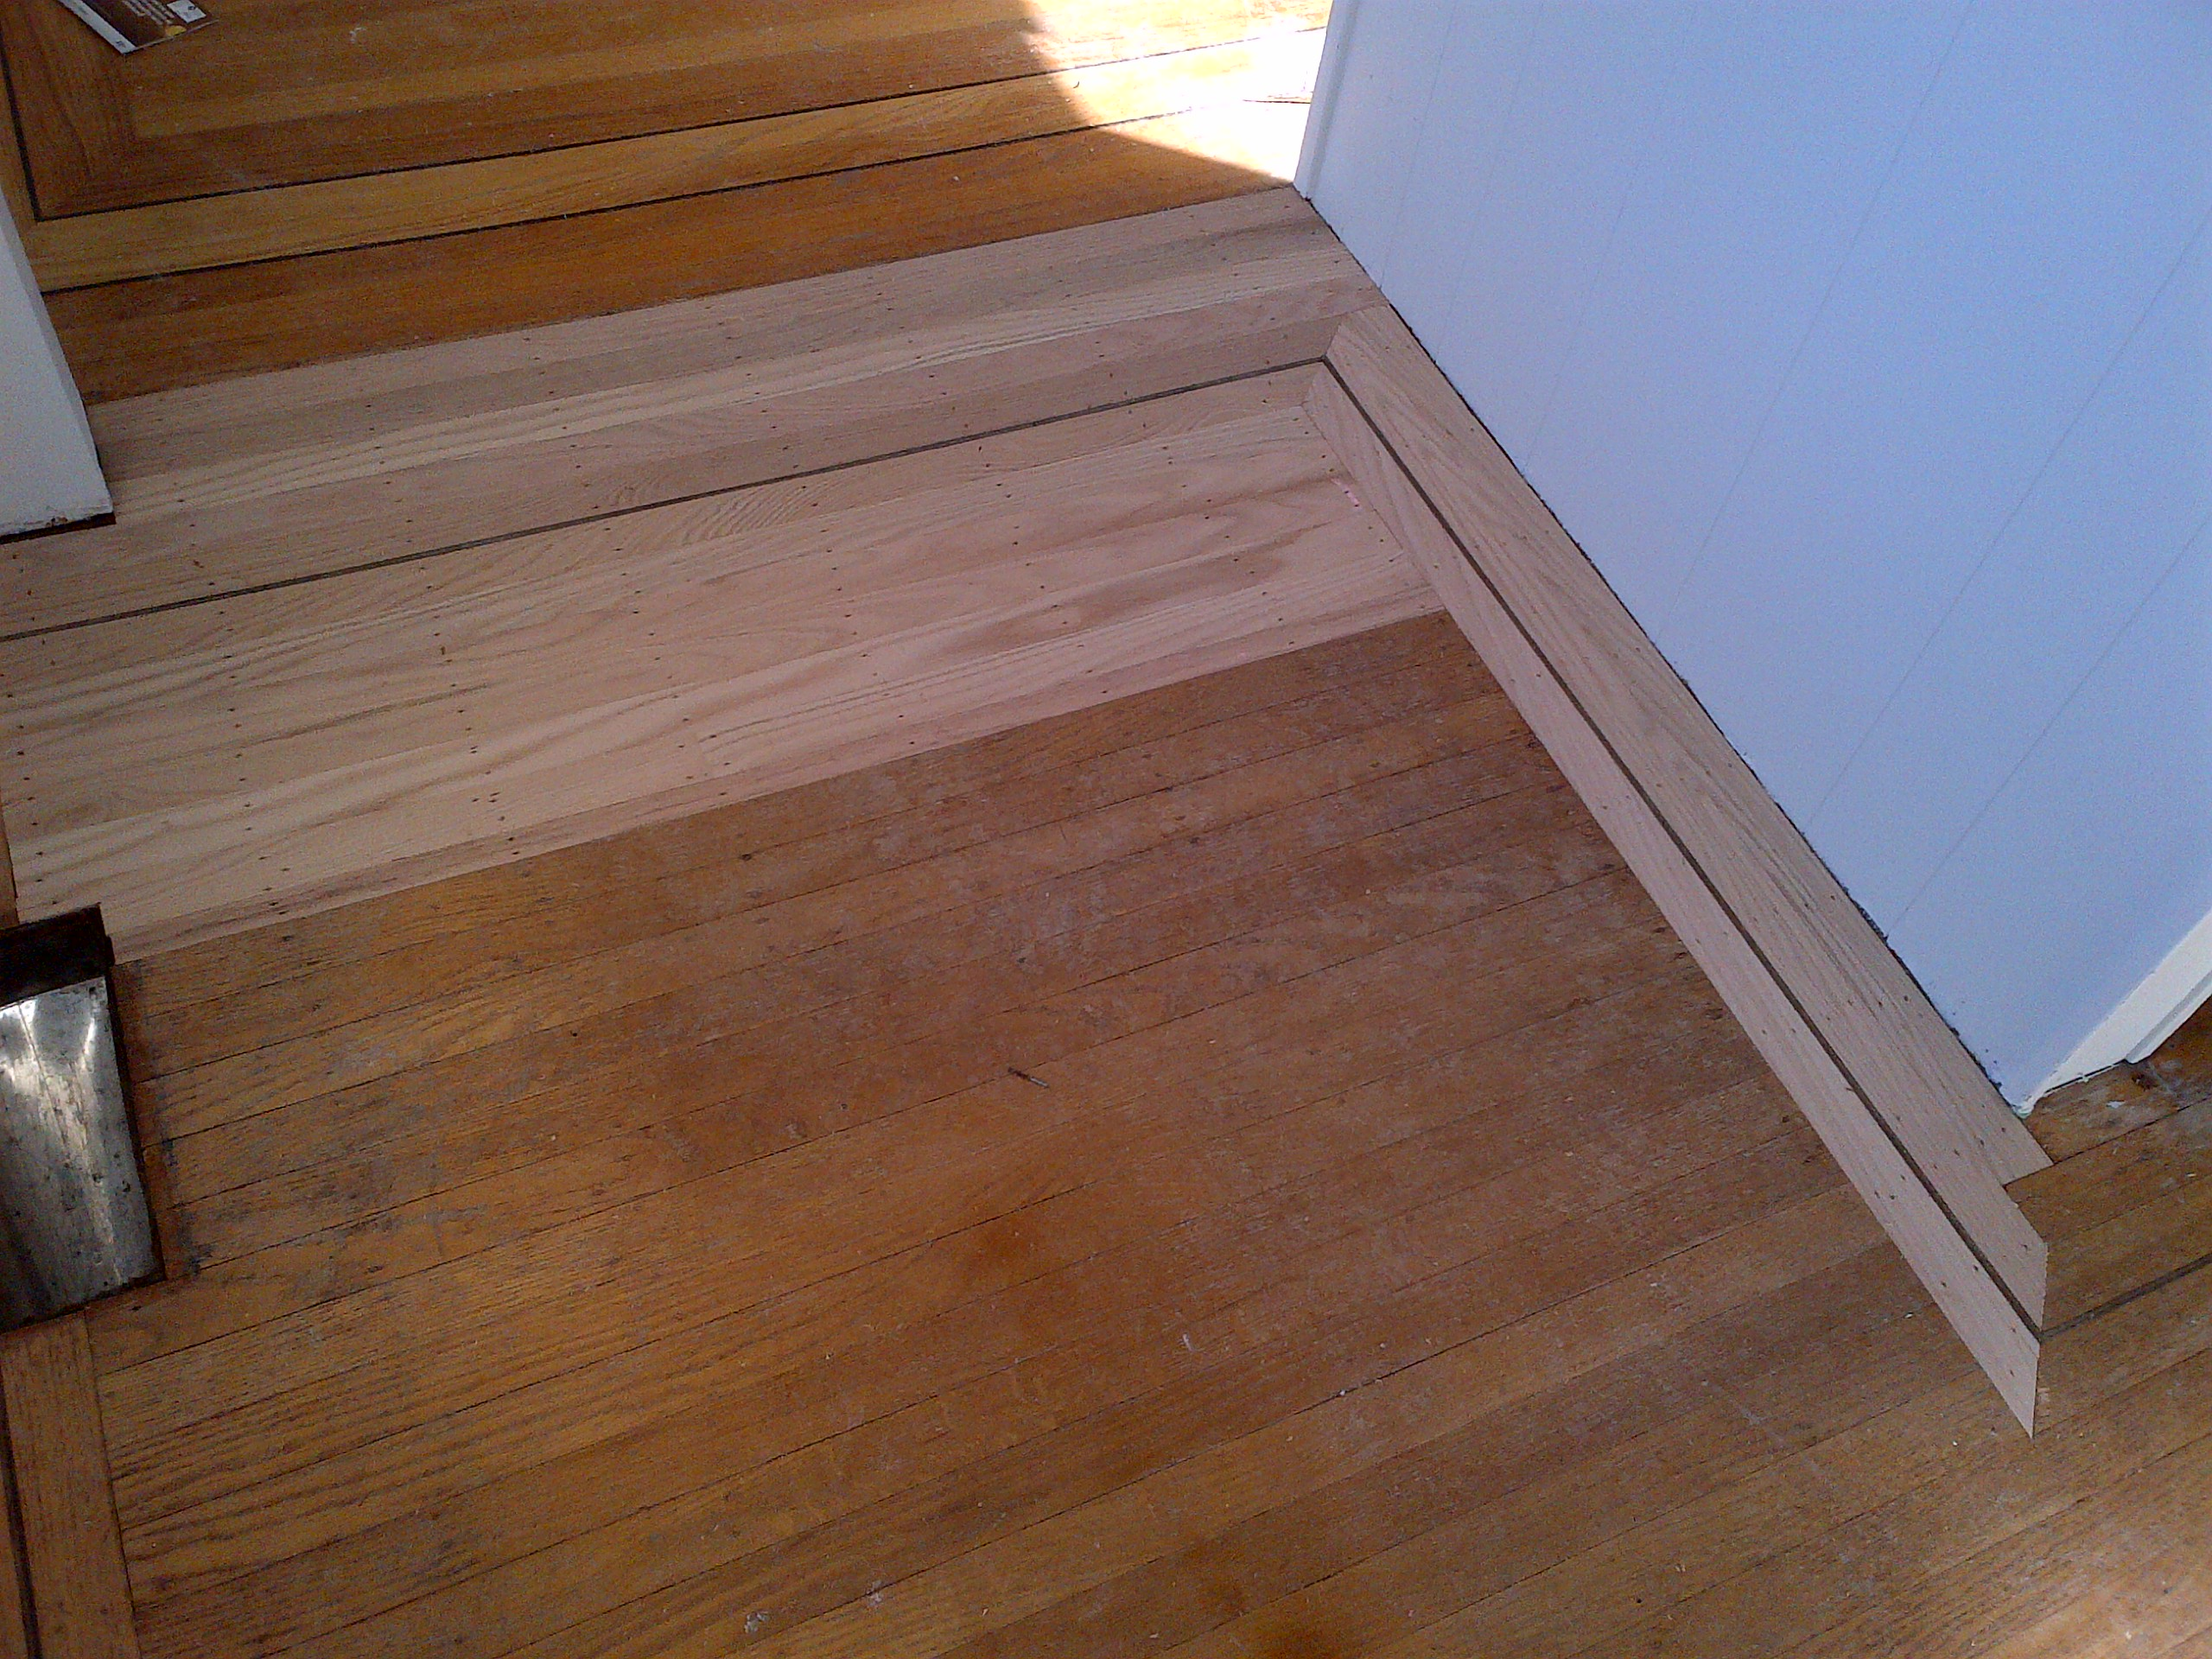 Vancouver Bc Dust Free Hardwood Floor Refinishing Ahf All